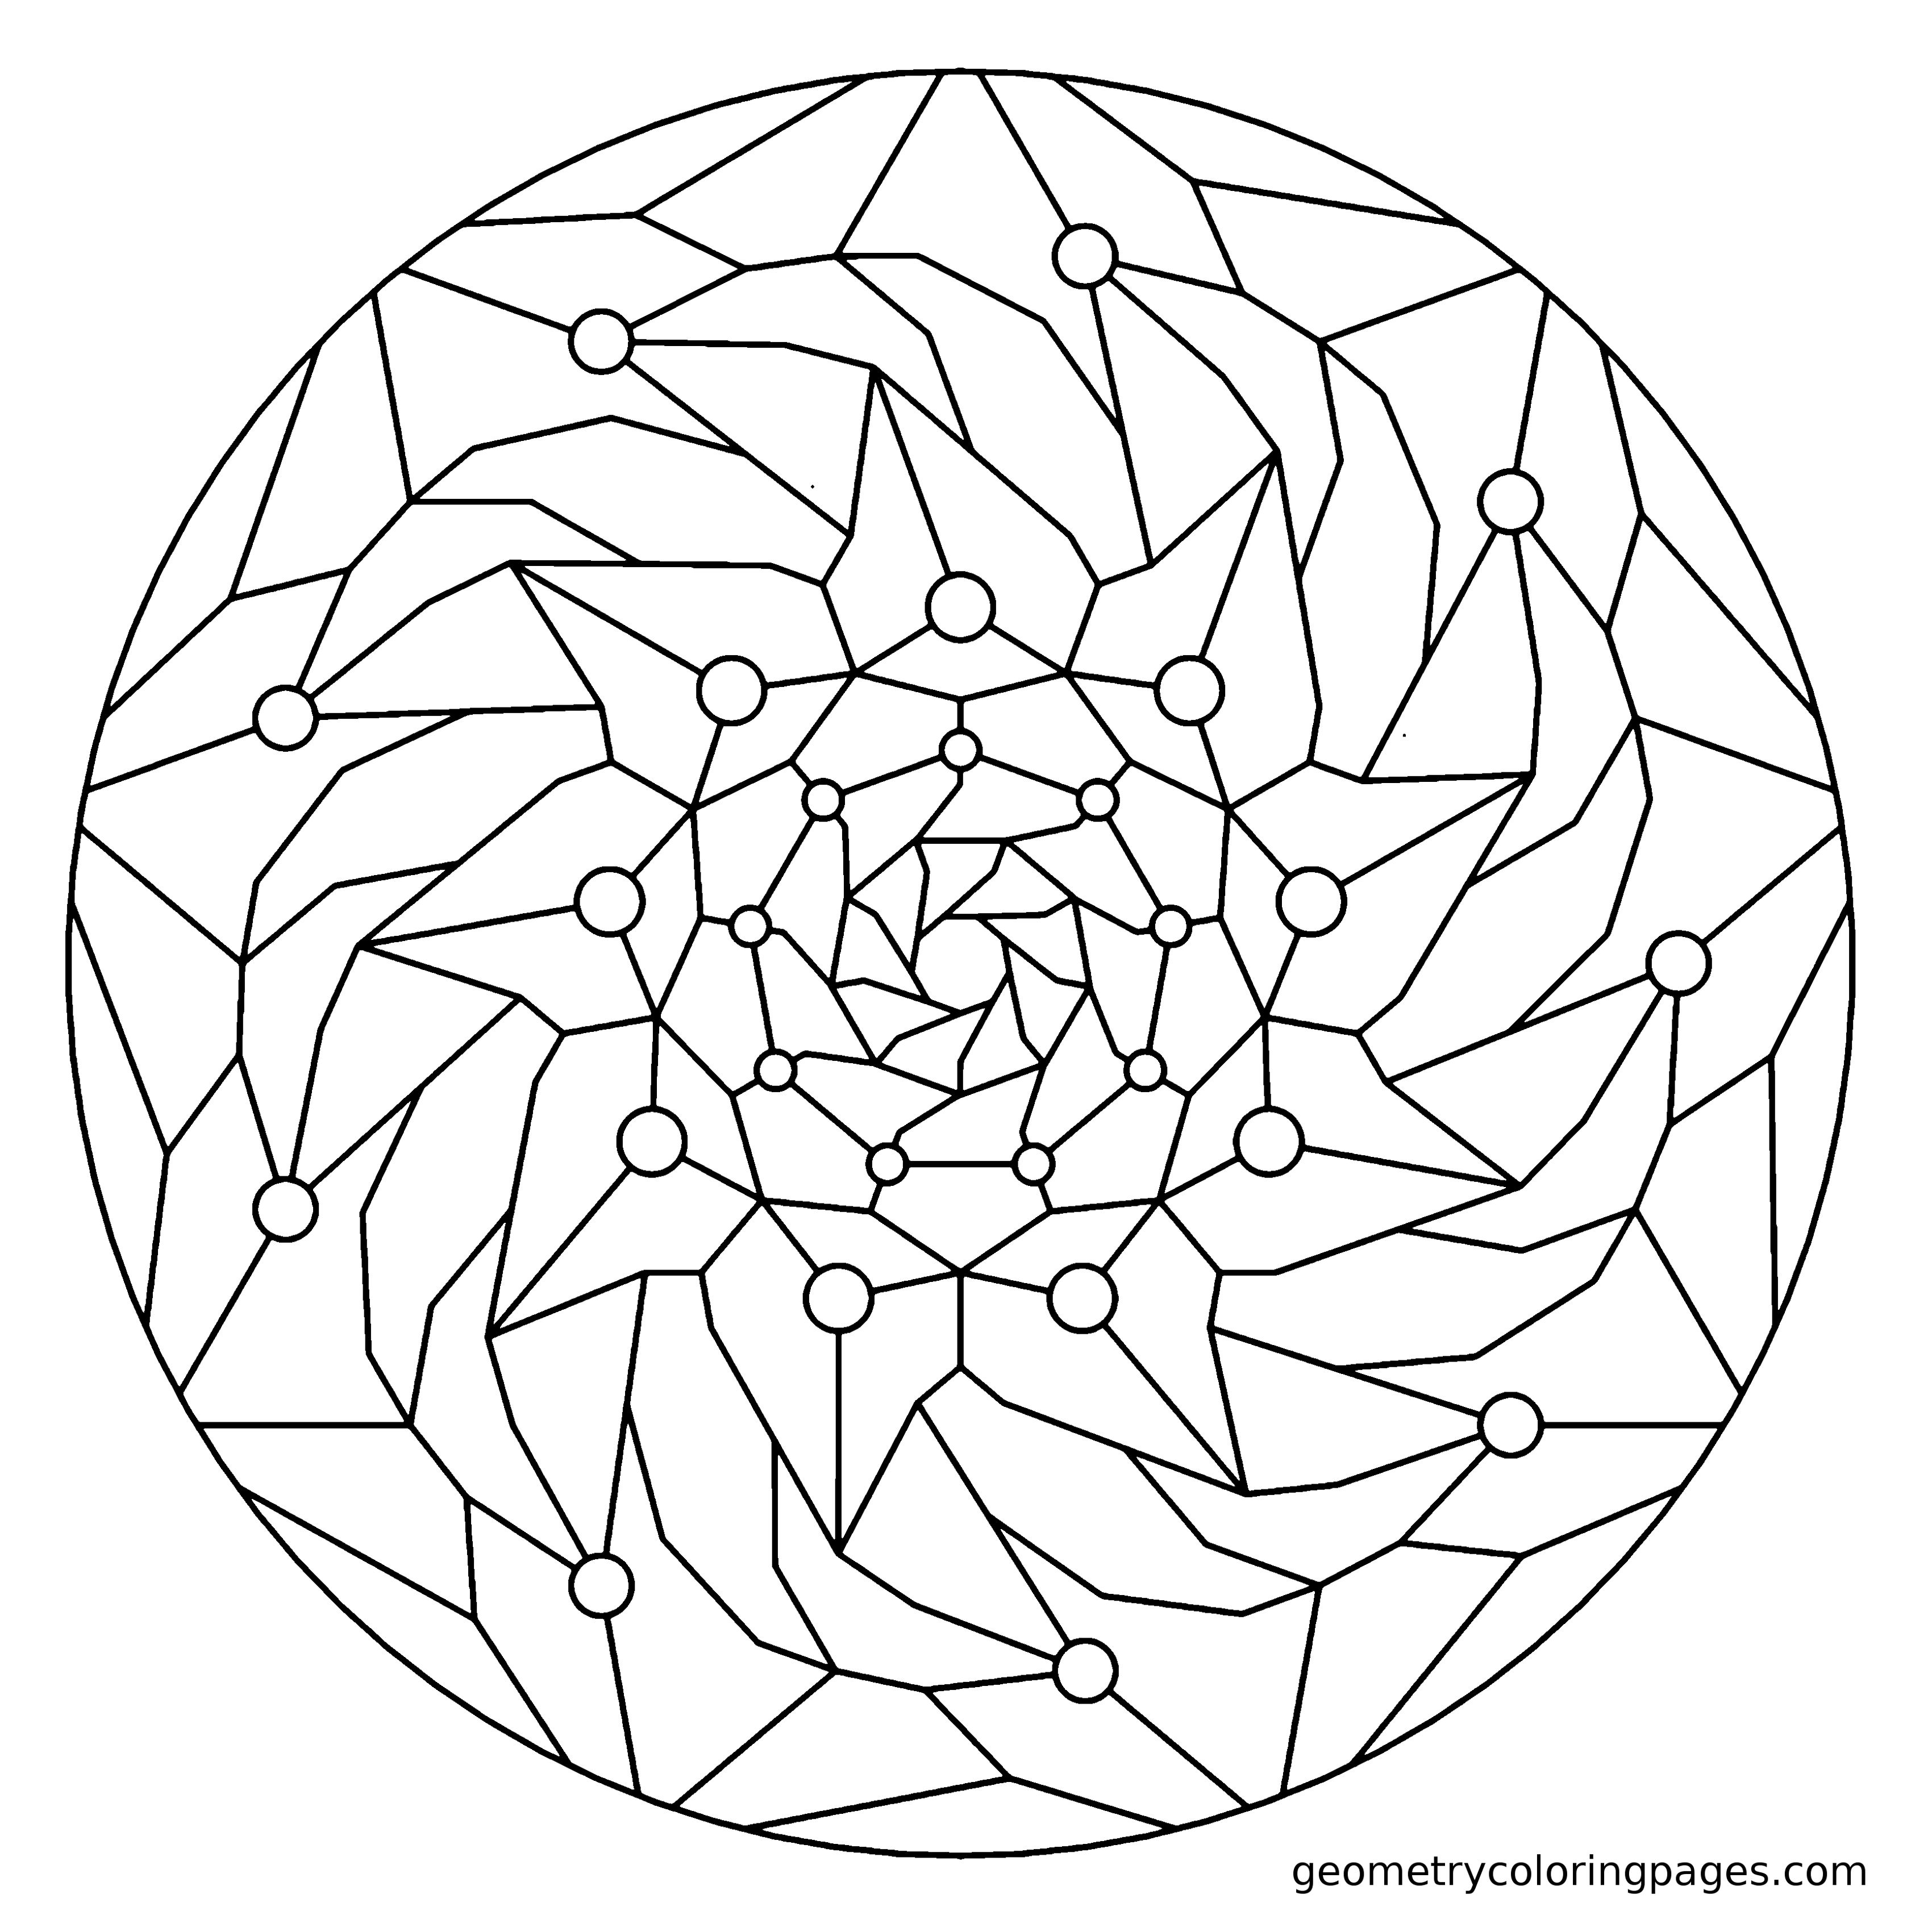 geometry coloring page fall - Coloring Pages Pdf